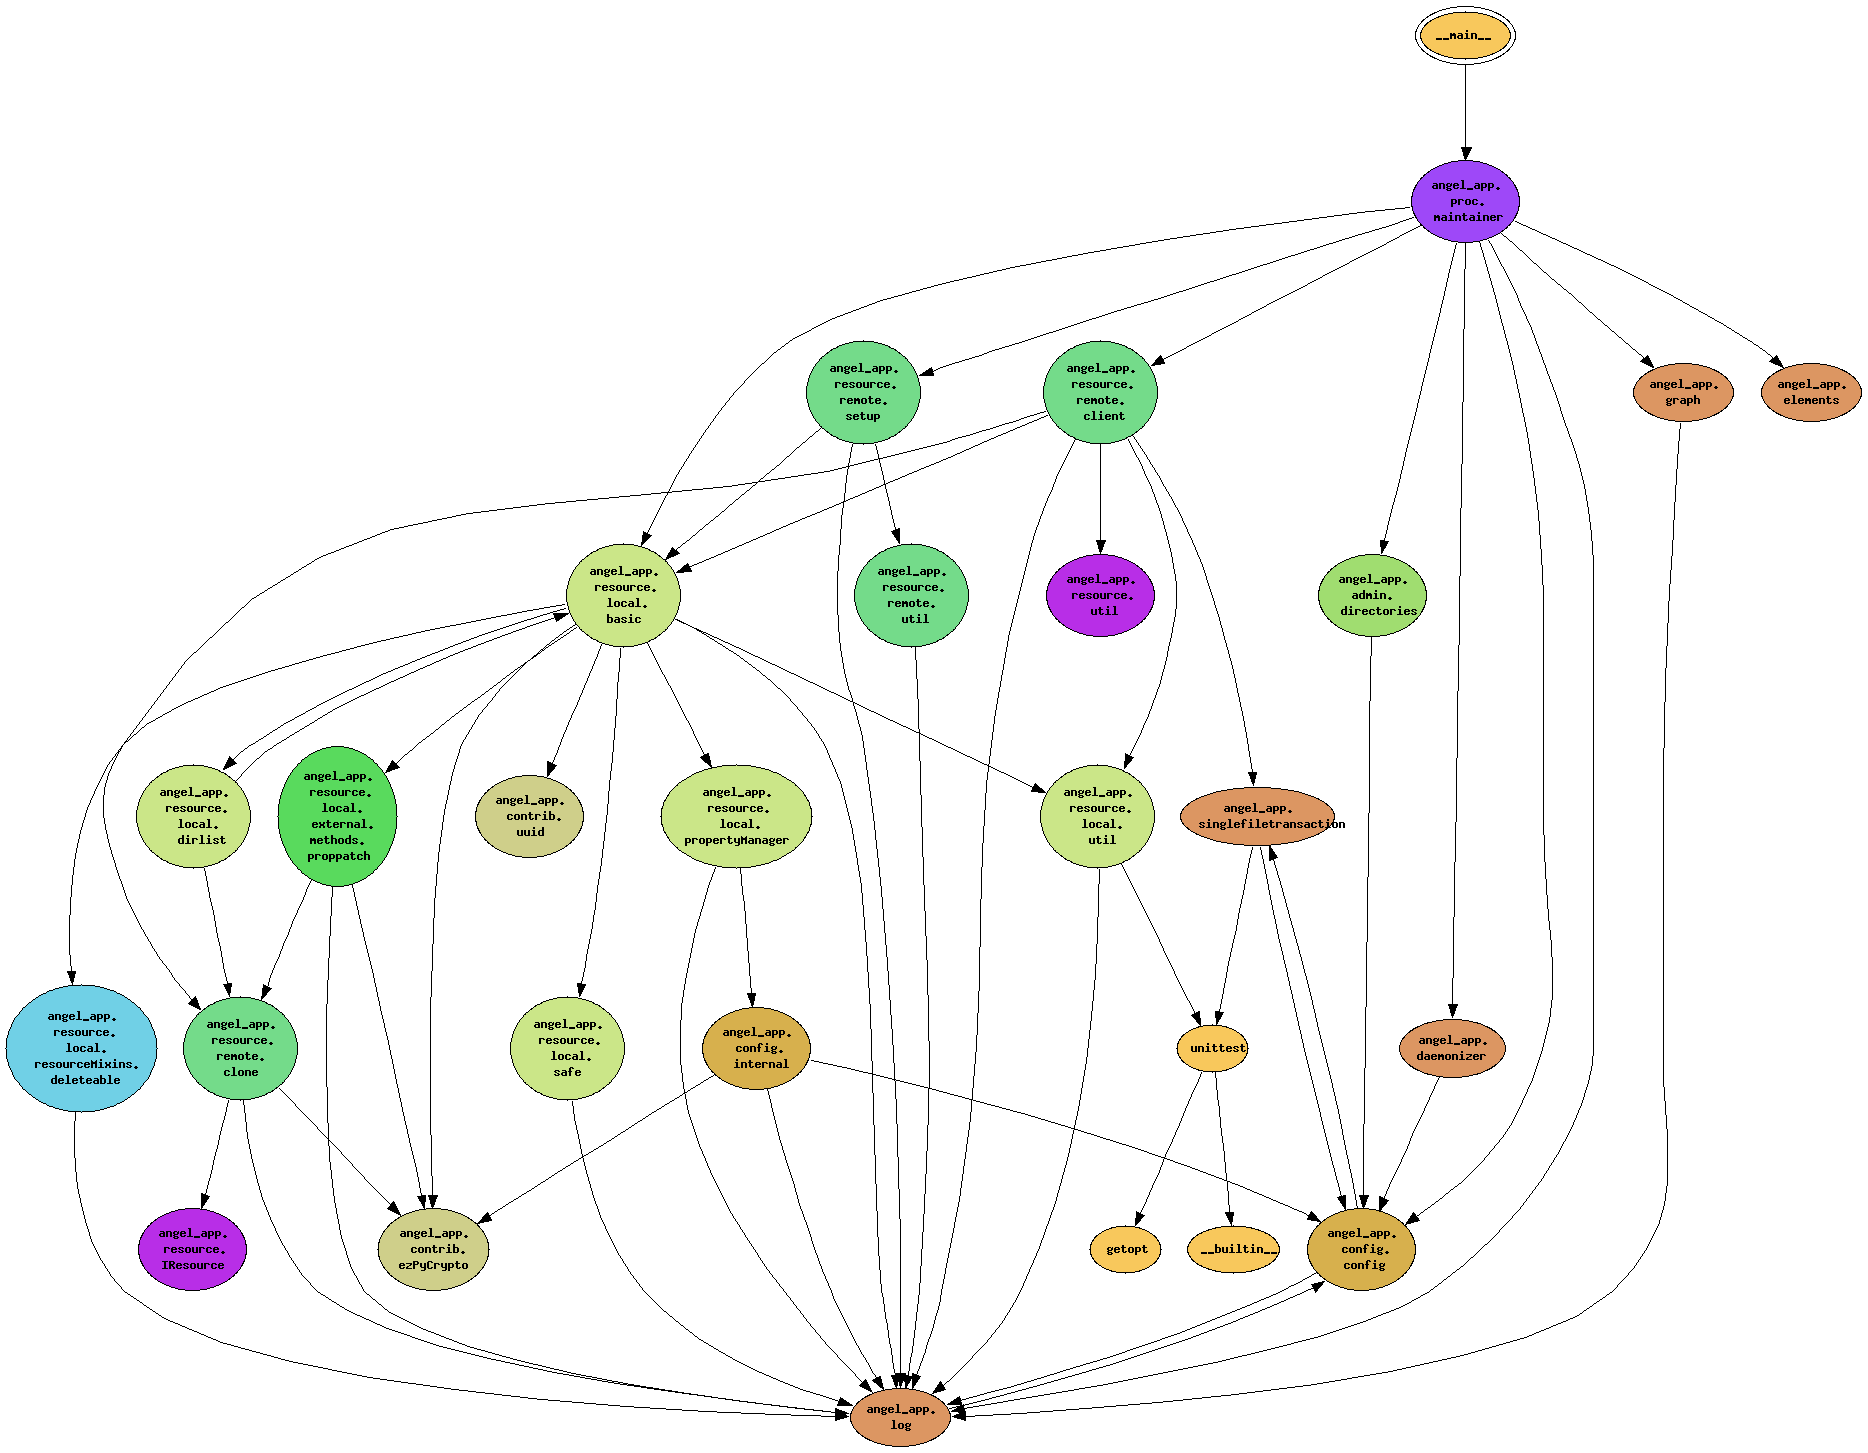 module dependencies of angel-app